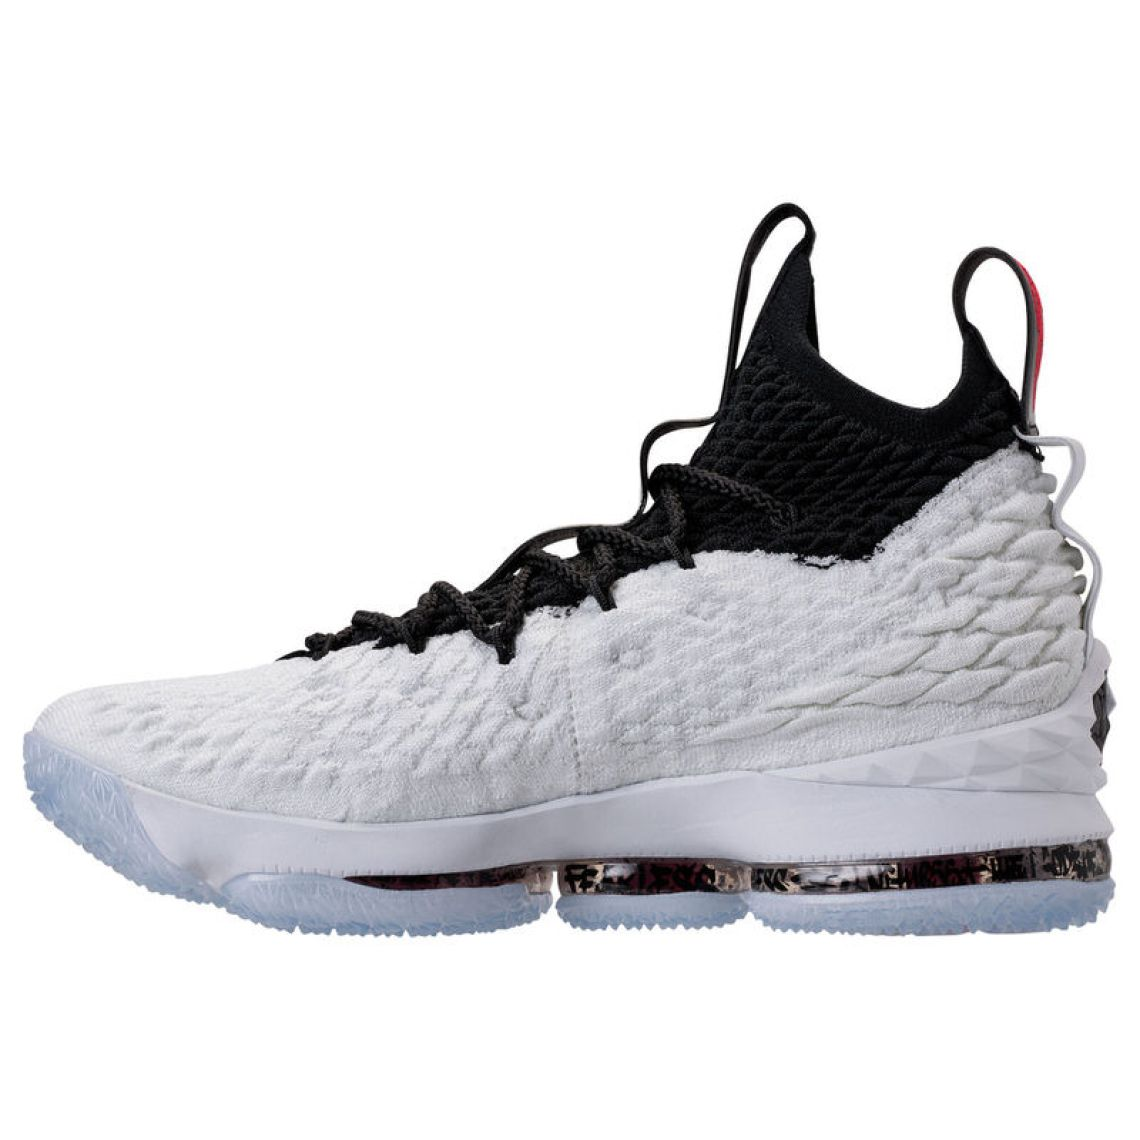 separation shoes 6fdbd 39ea7 Nike LeBron 15